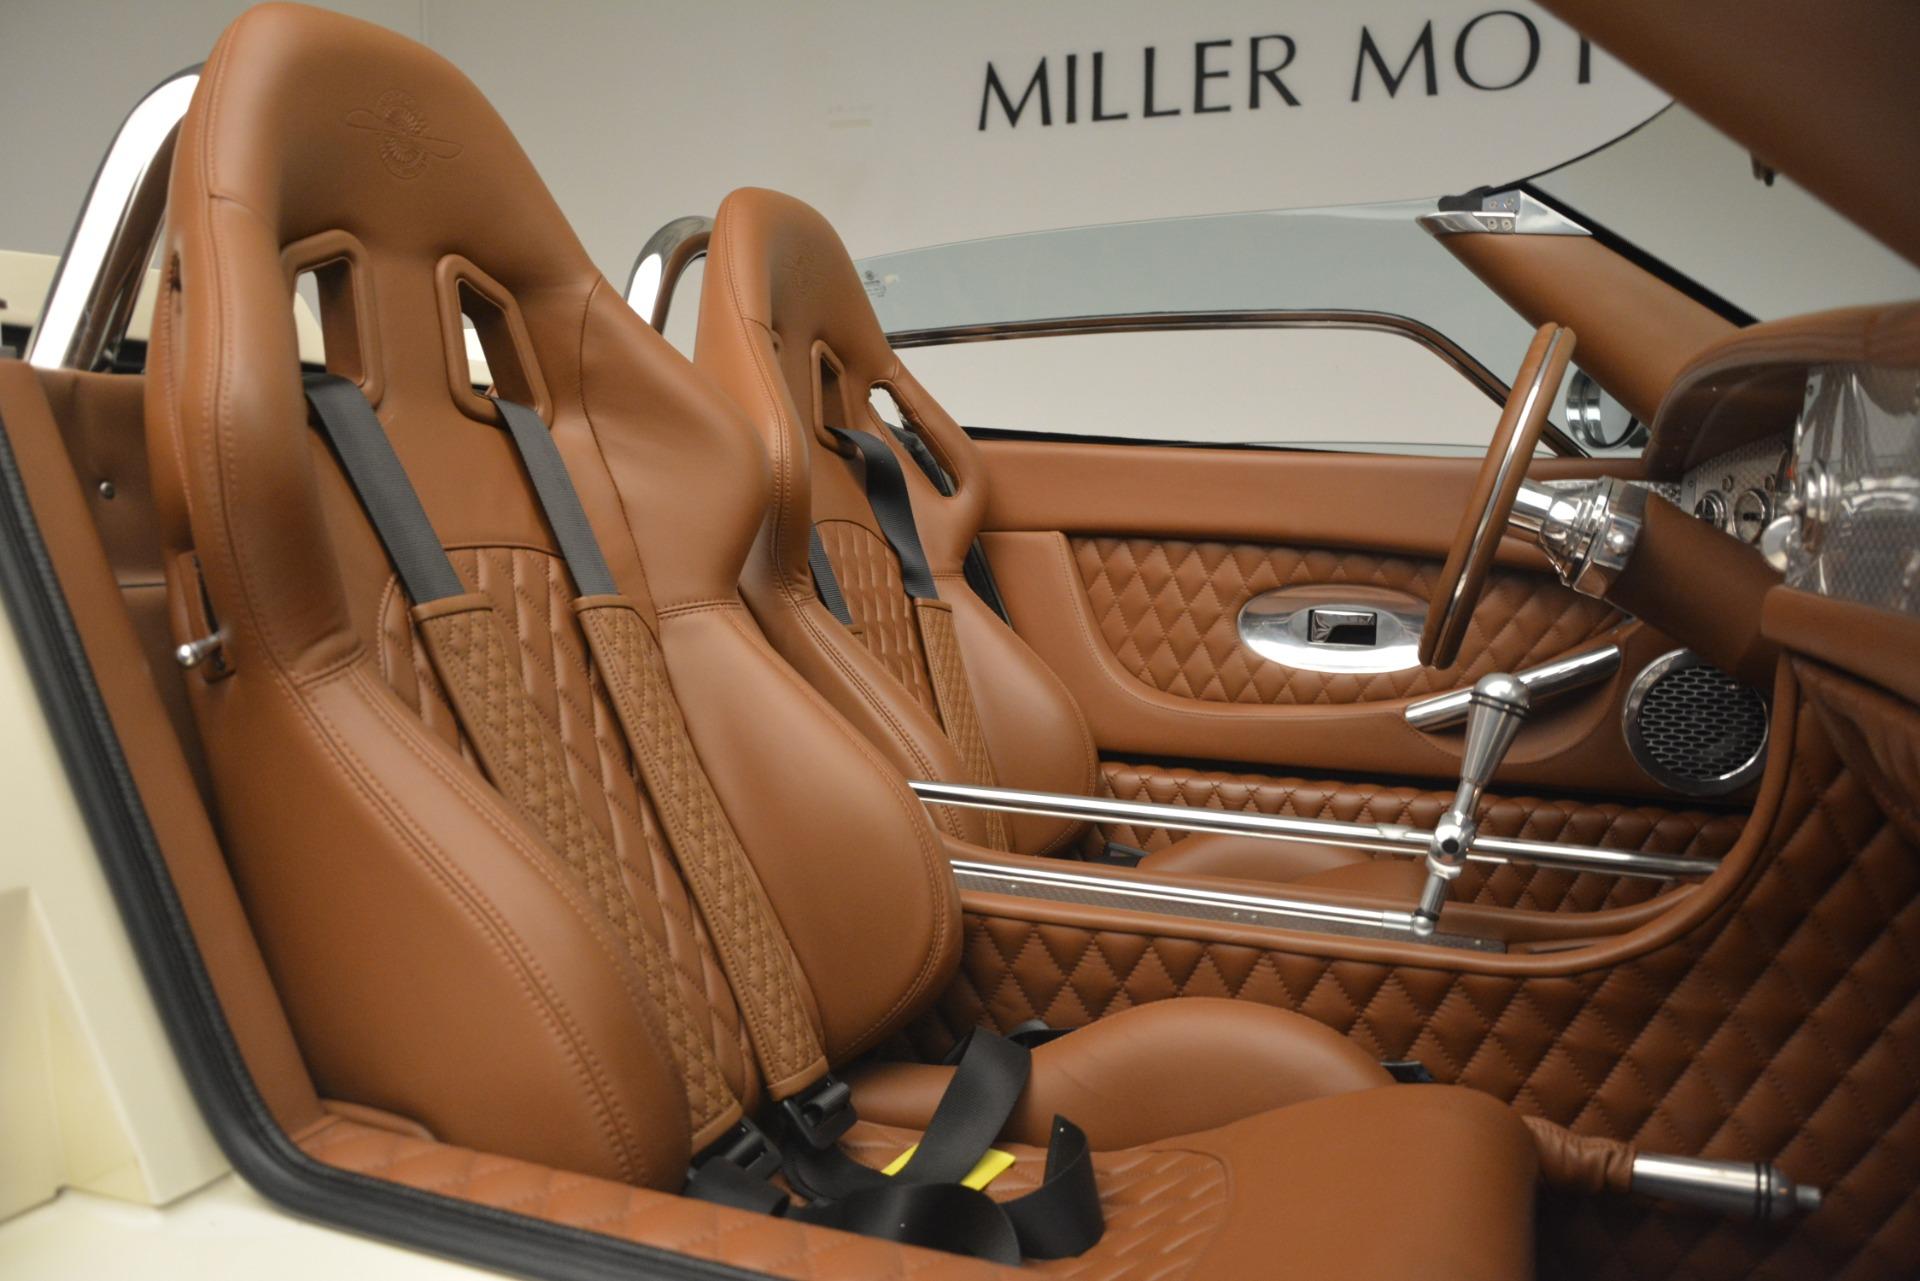 Used 2006 Spyker C8 Spyder  For Sale In Greenwich, CT 1661_p23